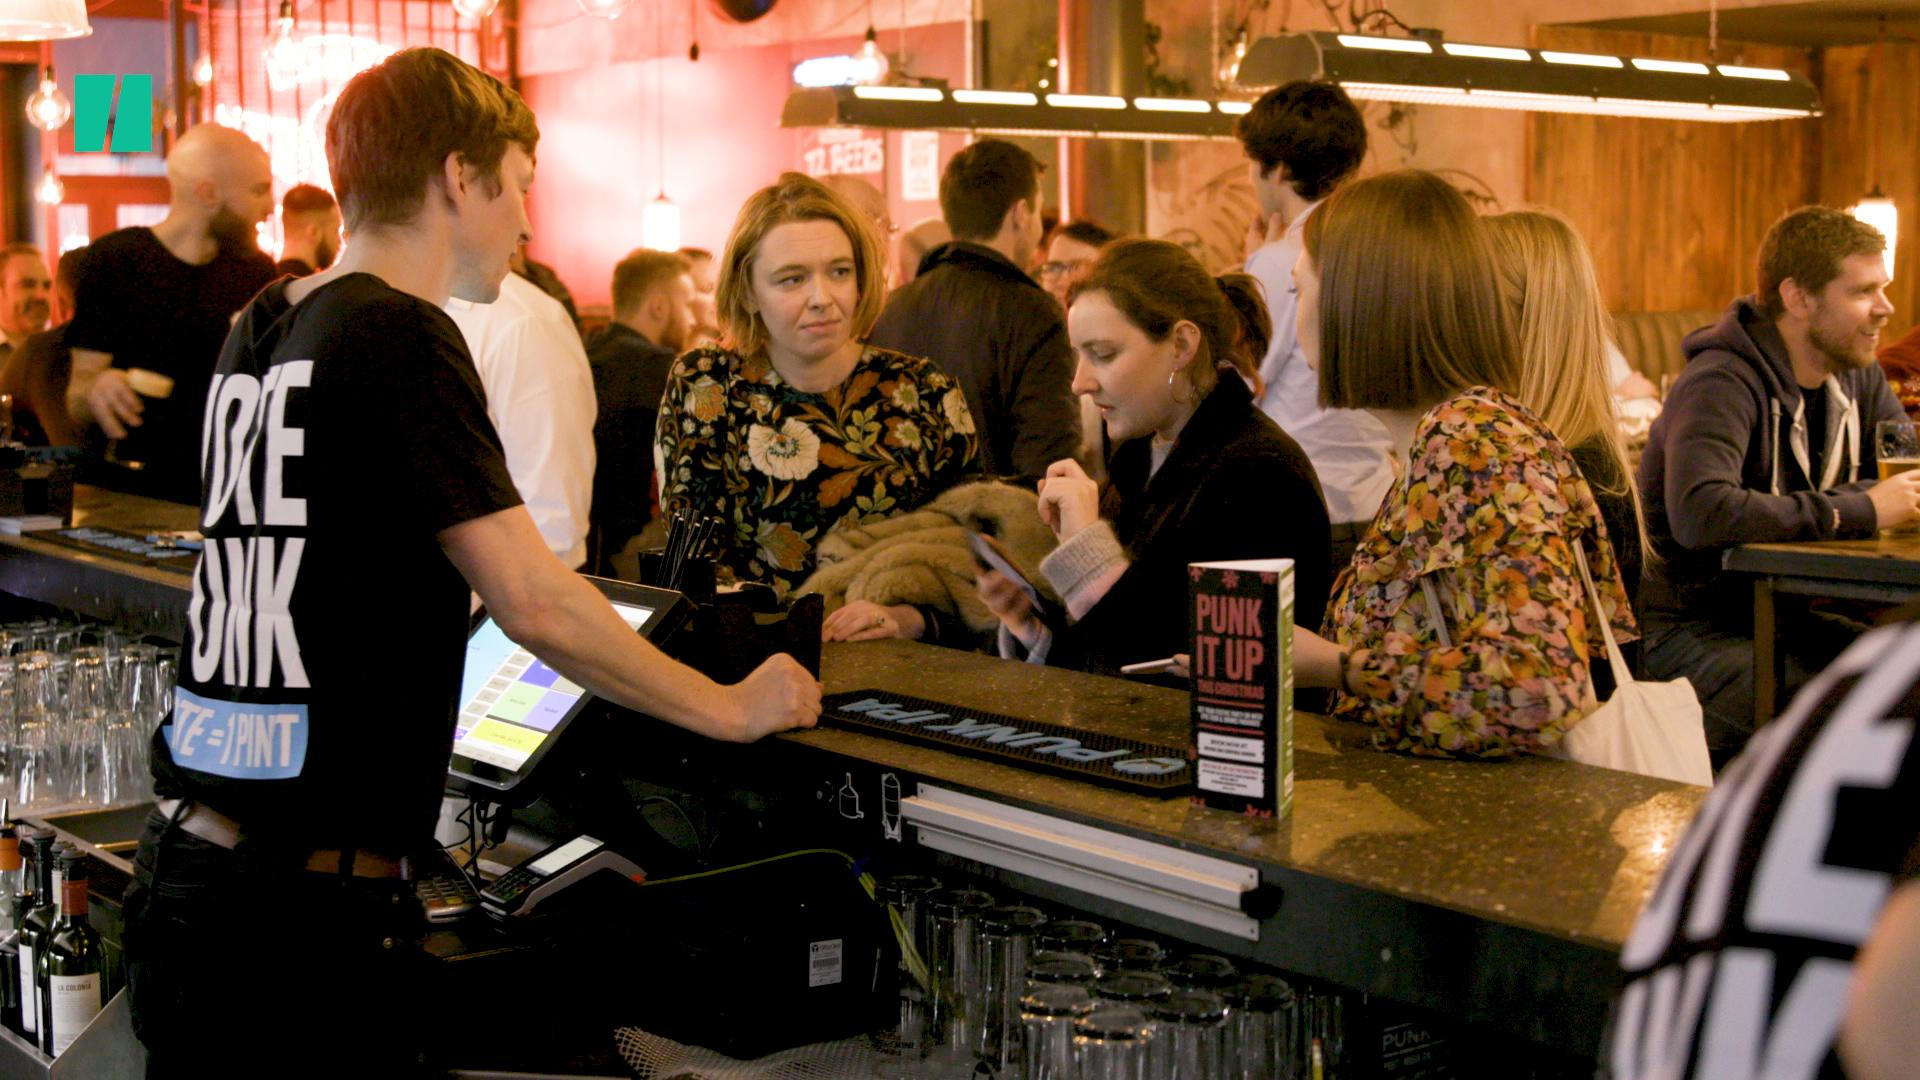 From Ballot Boxes To Beers, Voters Enjoy A Pint On The House